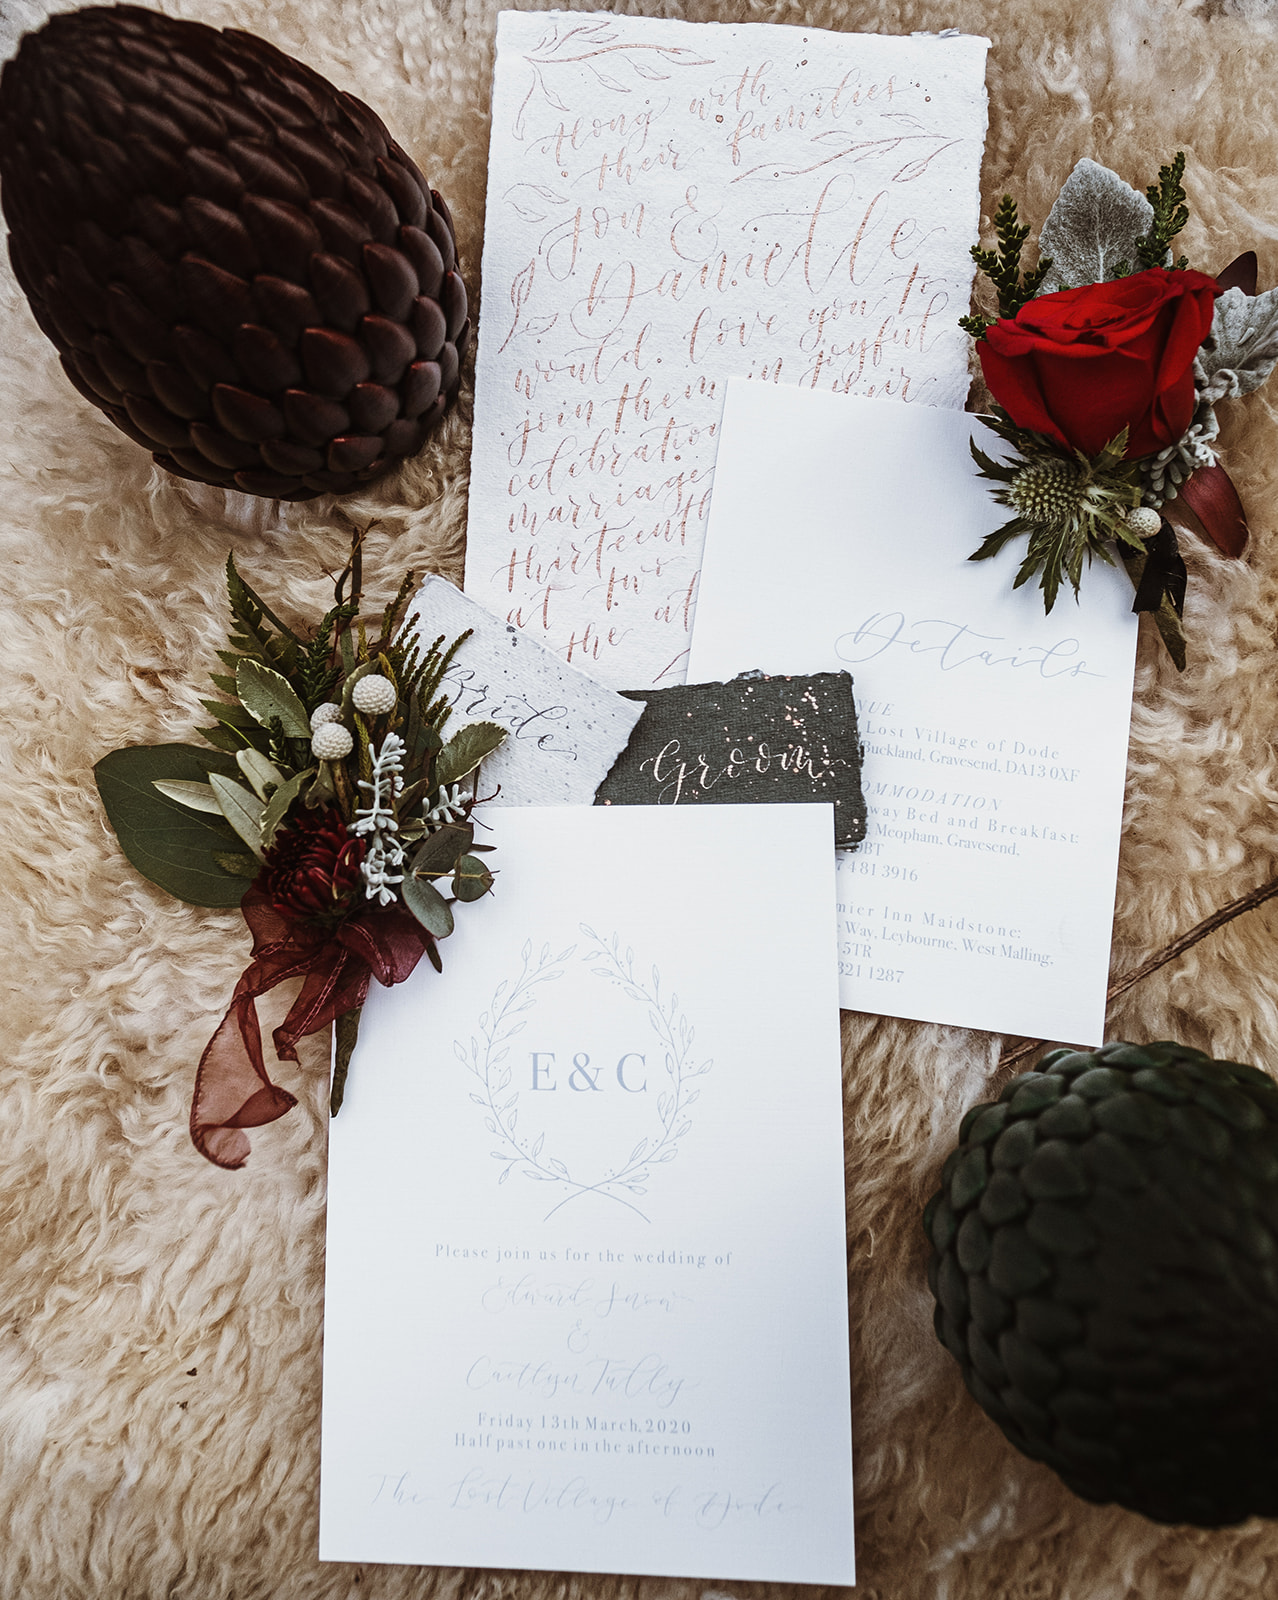 Game Of Thrones Wedding- Tom Jeavons Photography- Unconventional Wedding- Fantasy Wedding- Themed Wedding- alternative wedding stationery